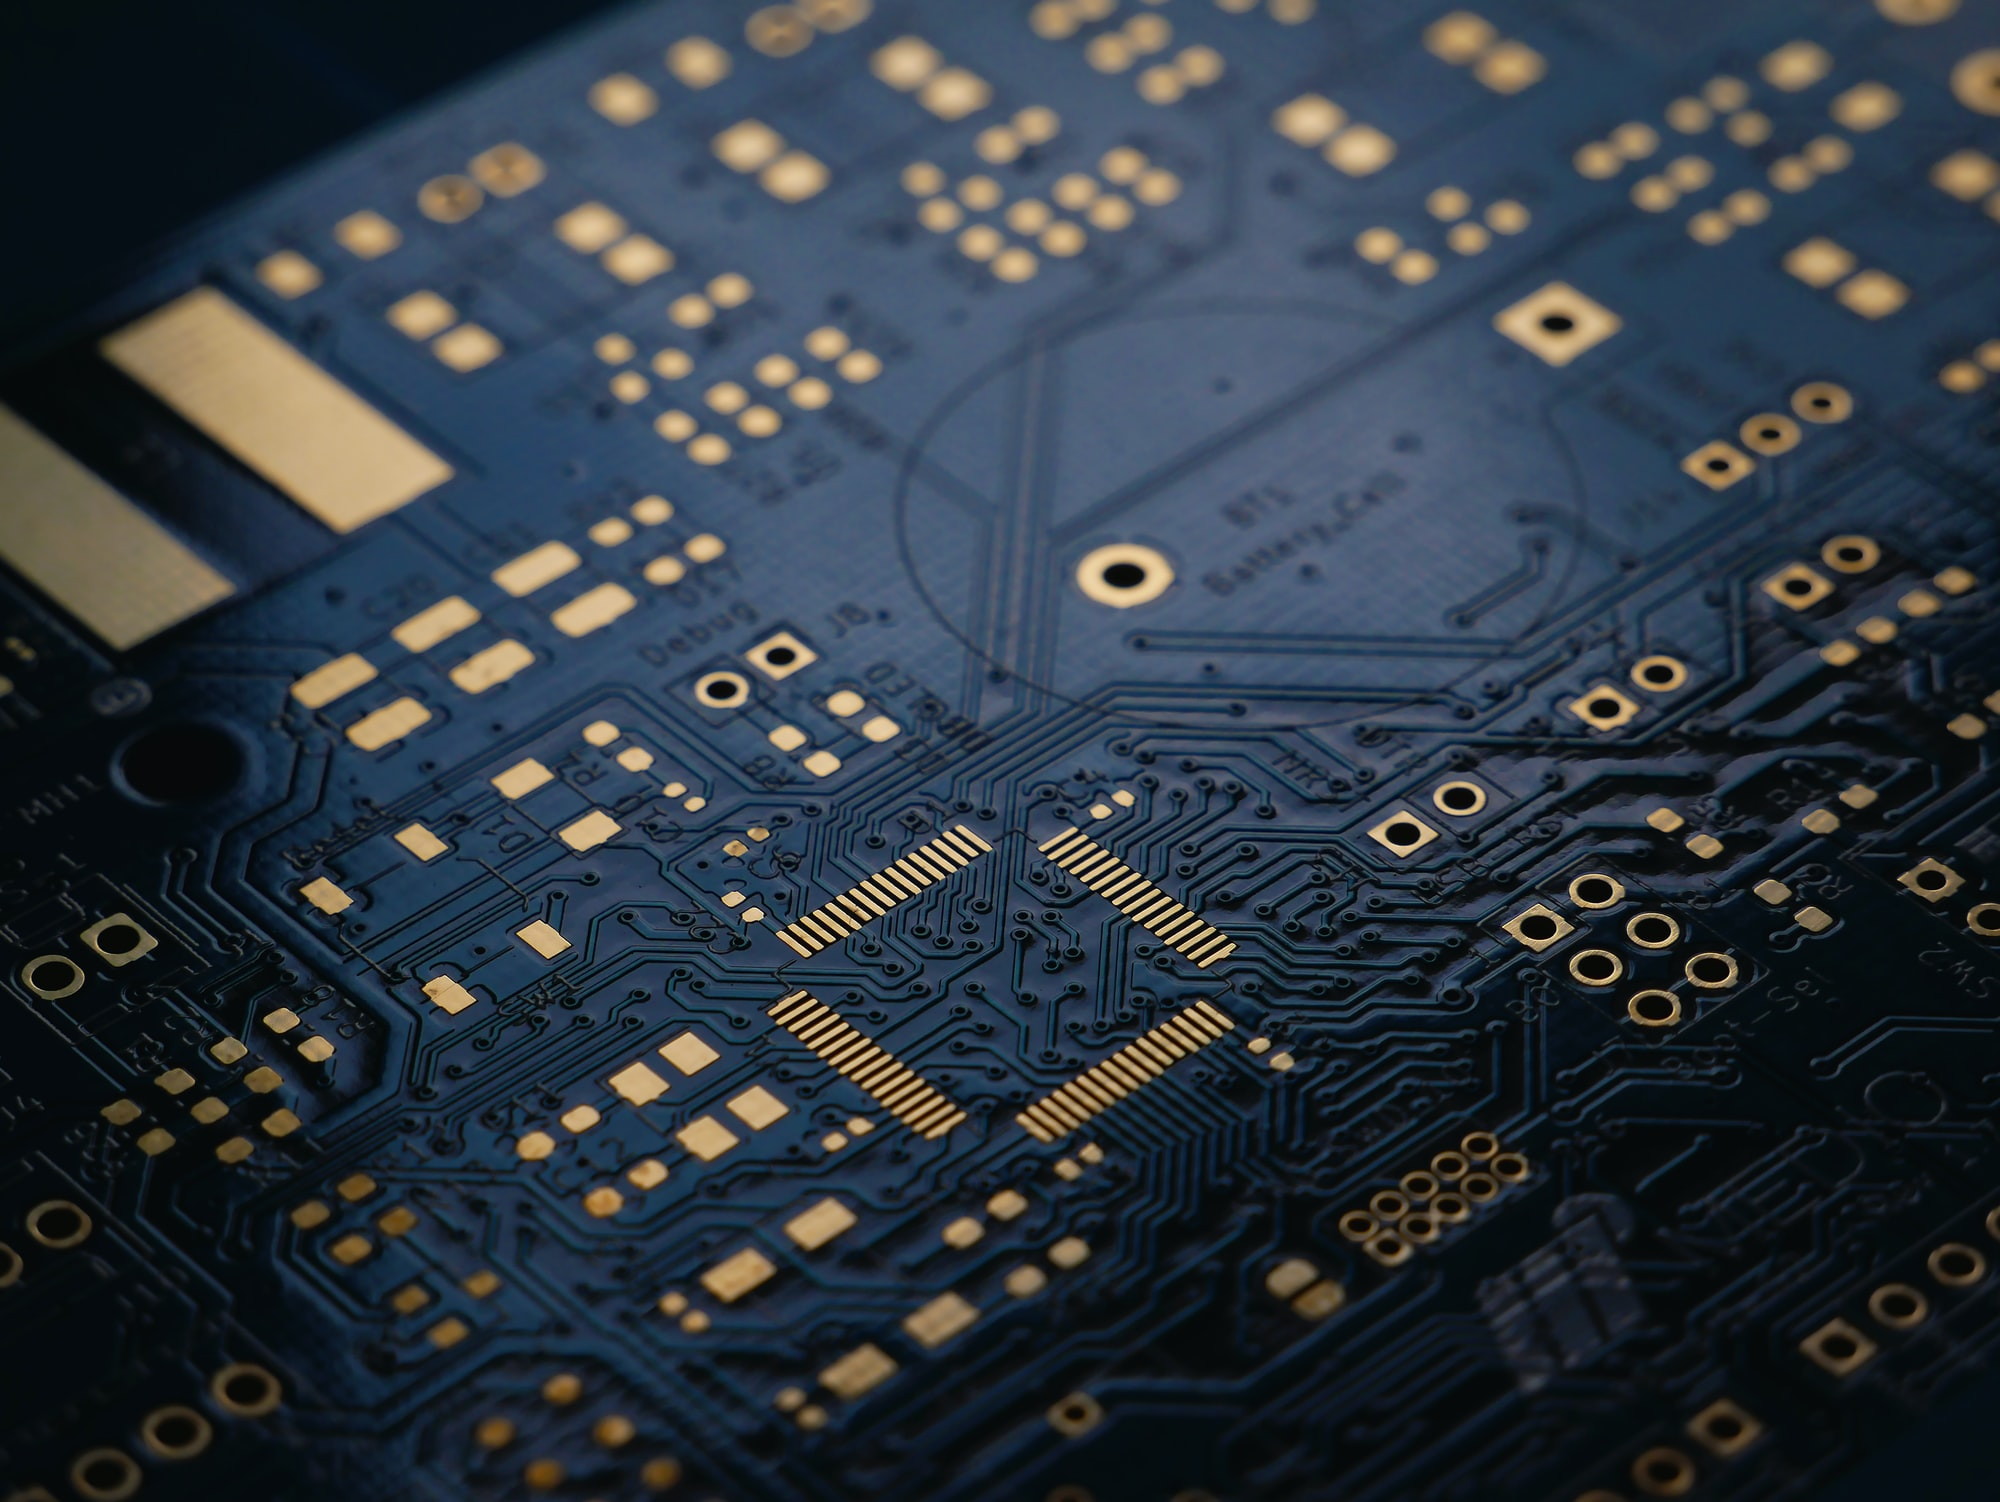 A low exposure photograph of an unsoldered Printed Circuit Board (PCB) with ENIG (Gold) finish.